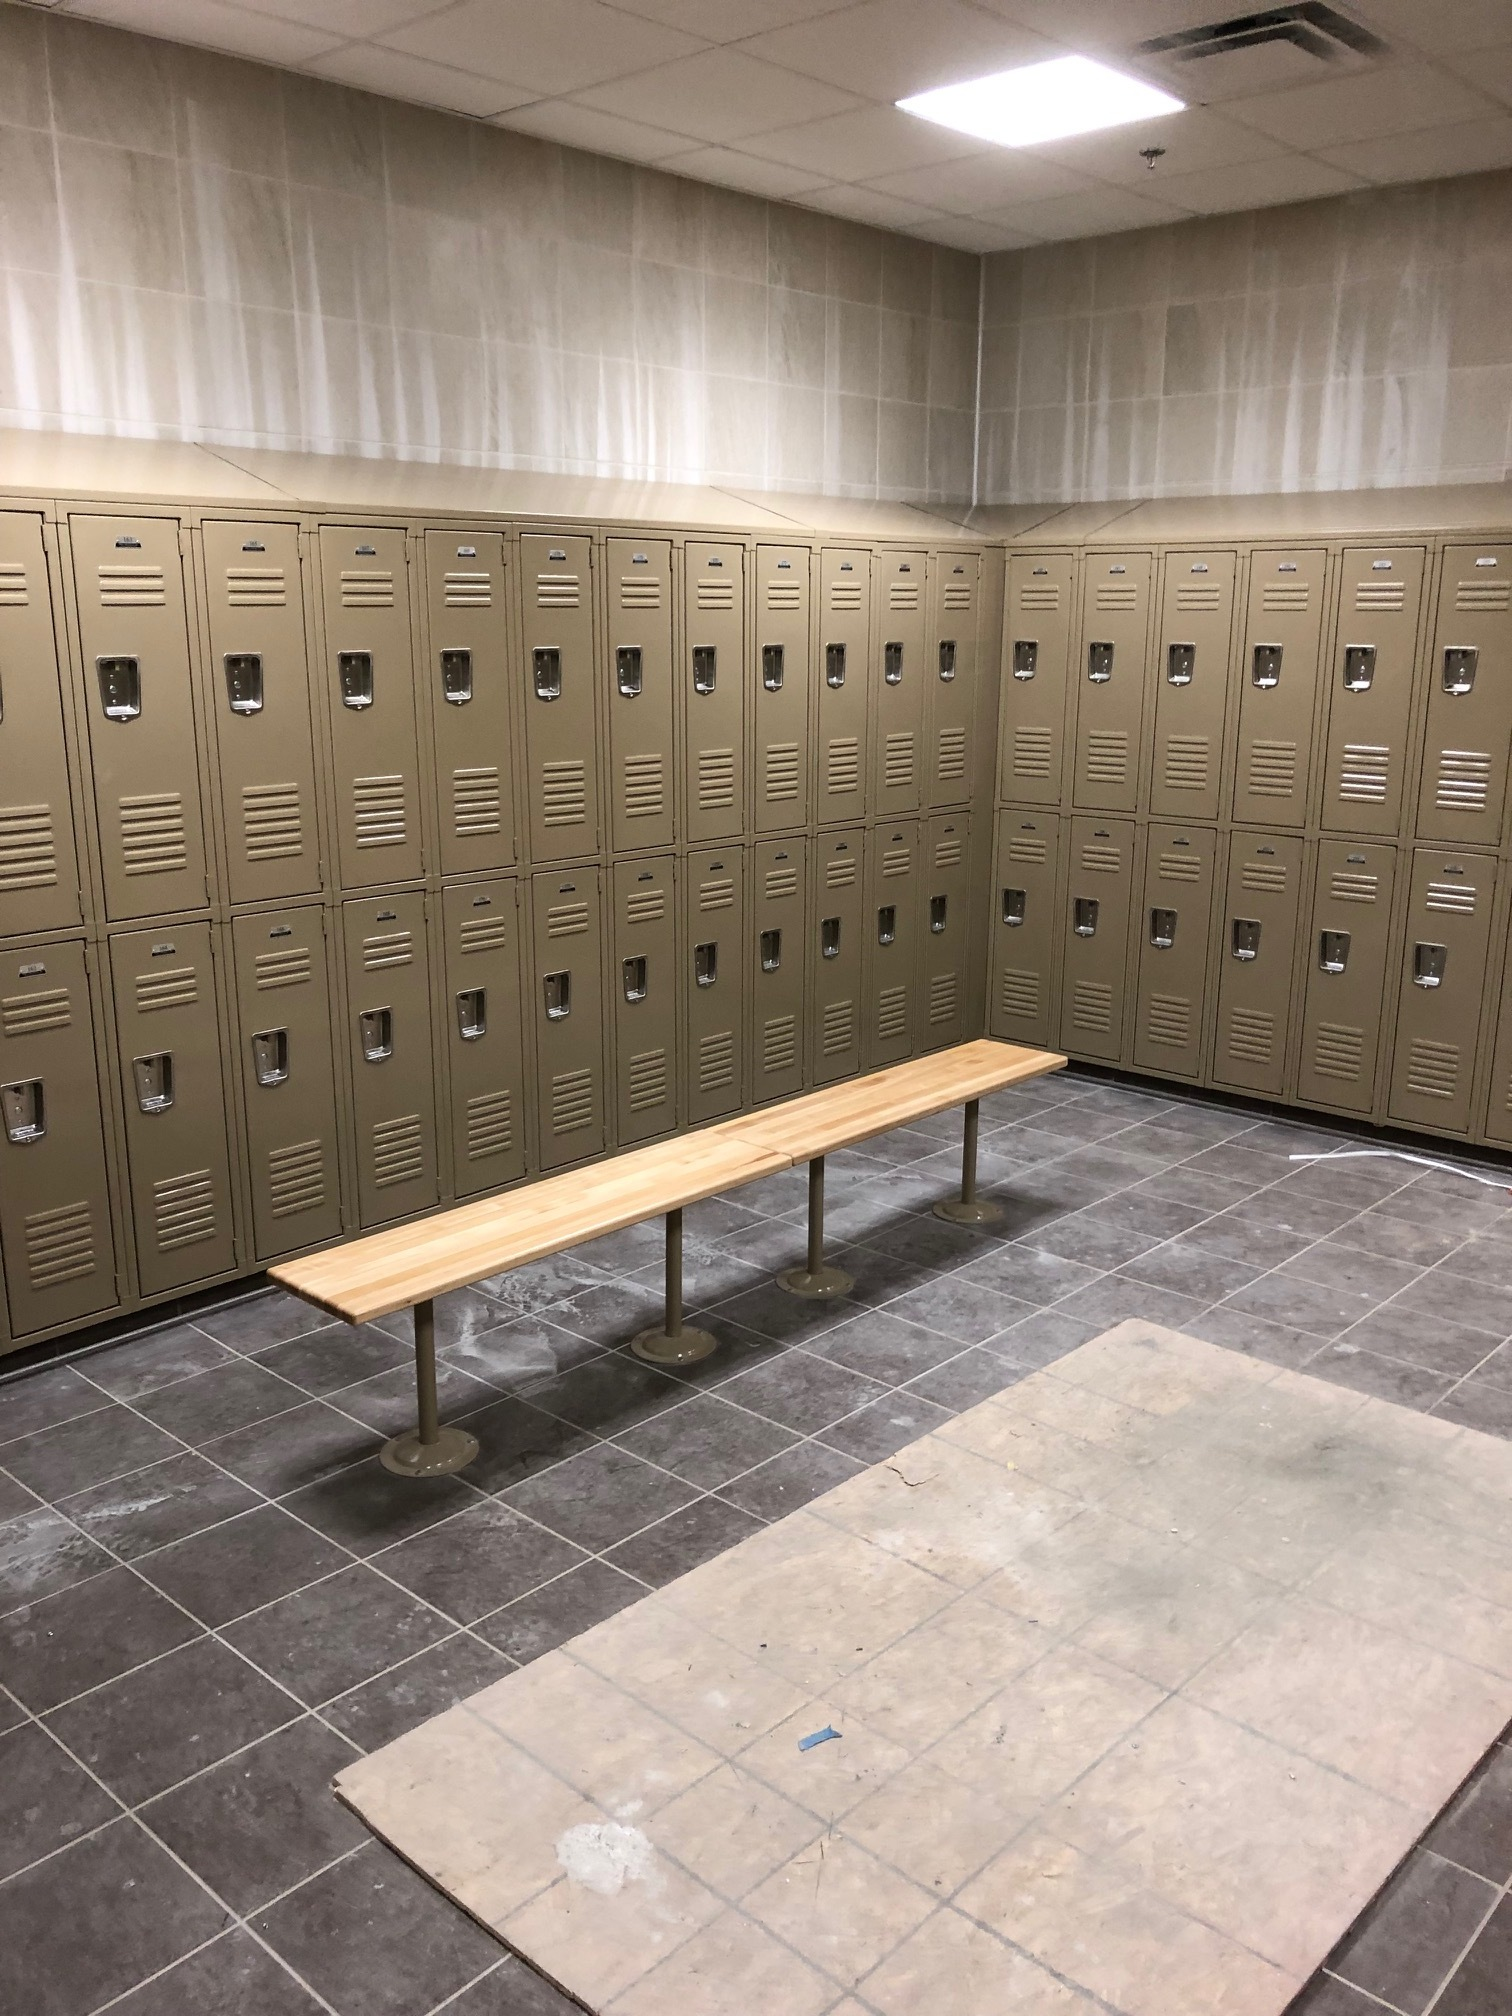 Locker installation